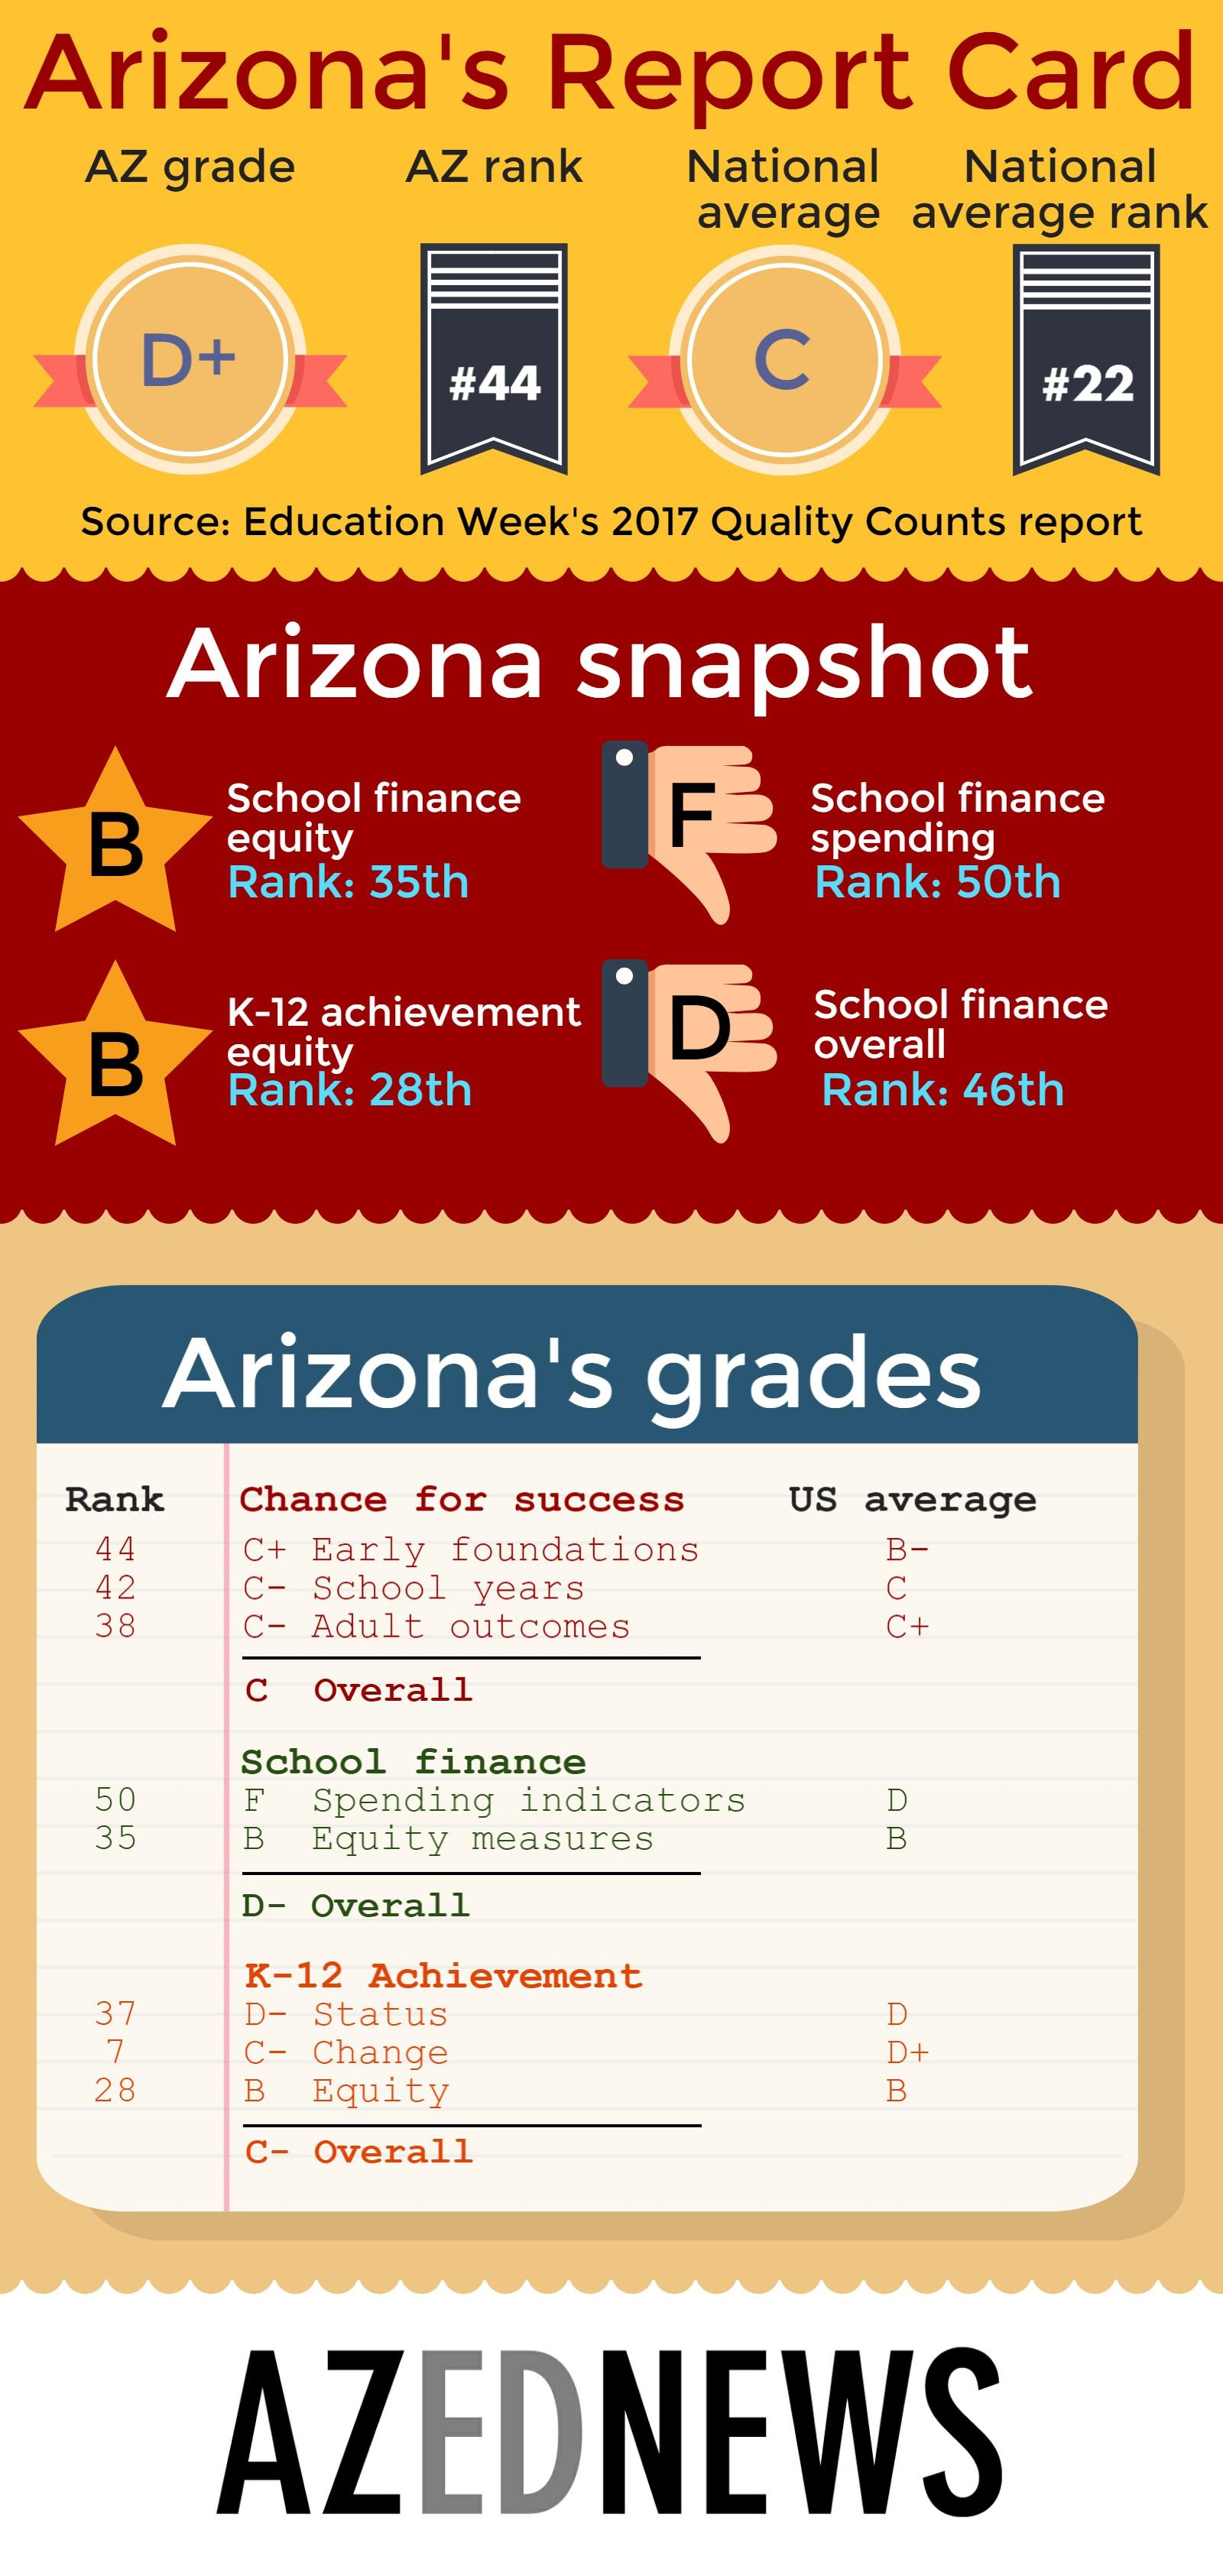 Arizona's achievement gains can't overcome F in funding AZEdNewsArizonas2016ReportCardInfographic